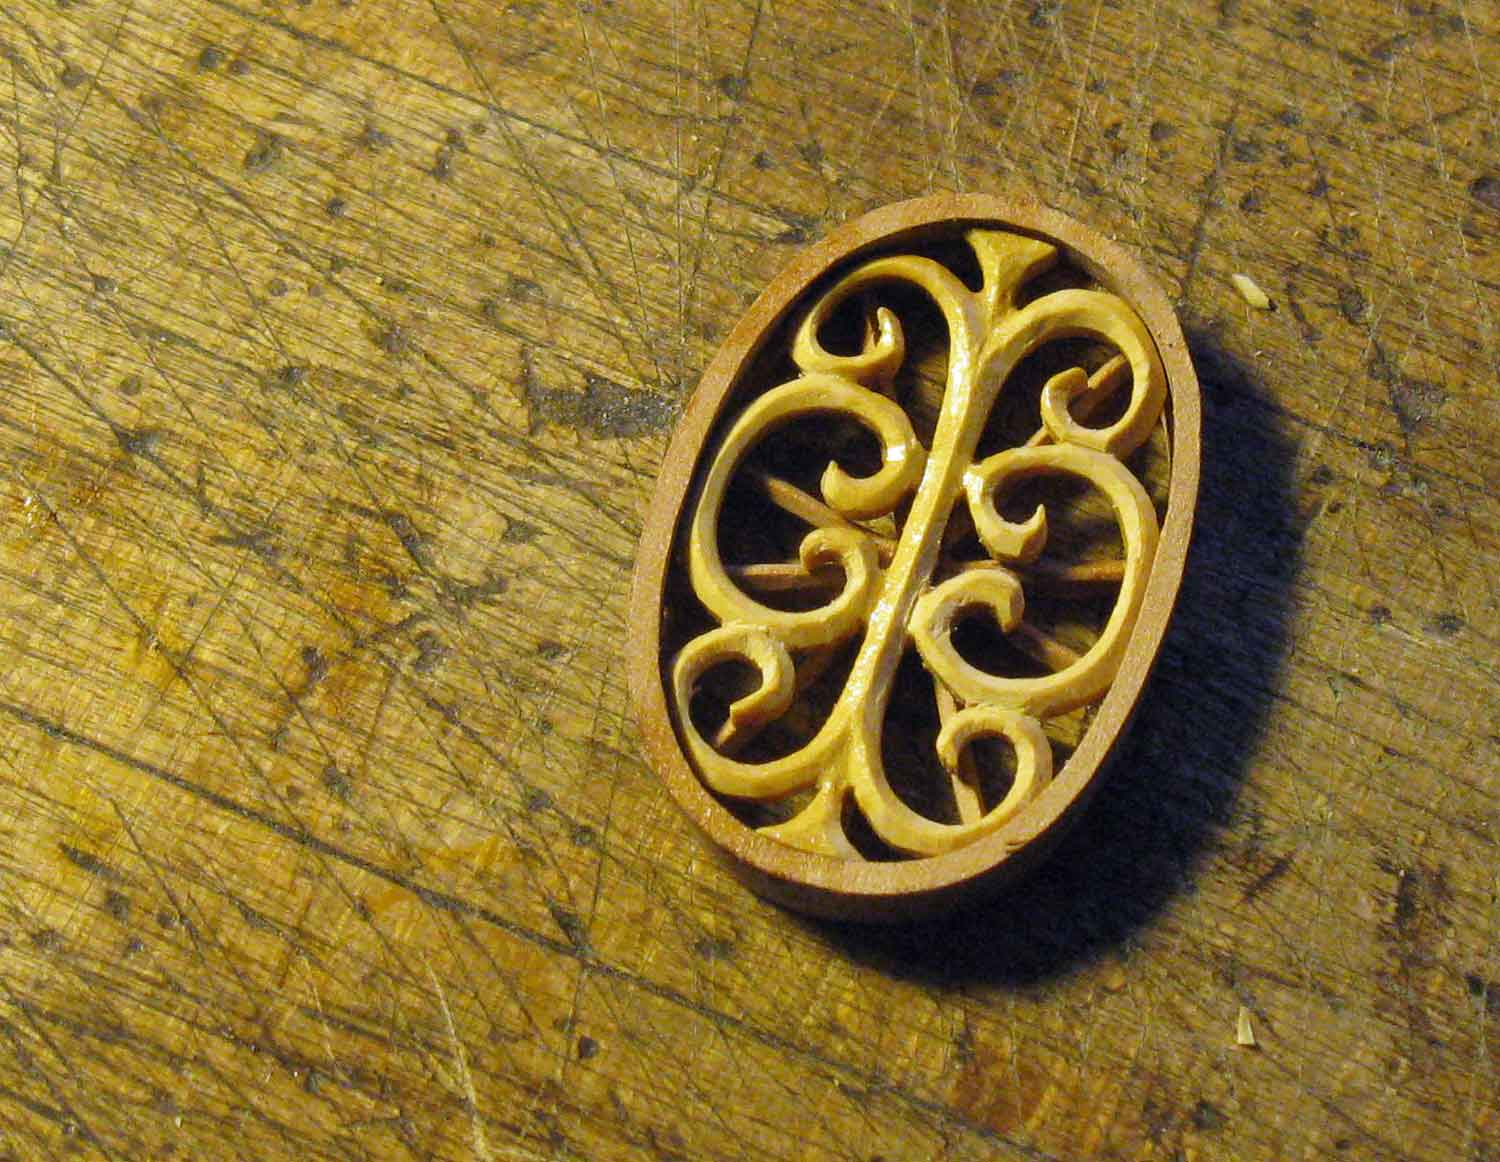 The rosette, ready to inlay